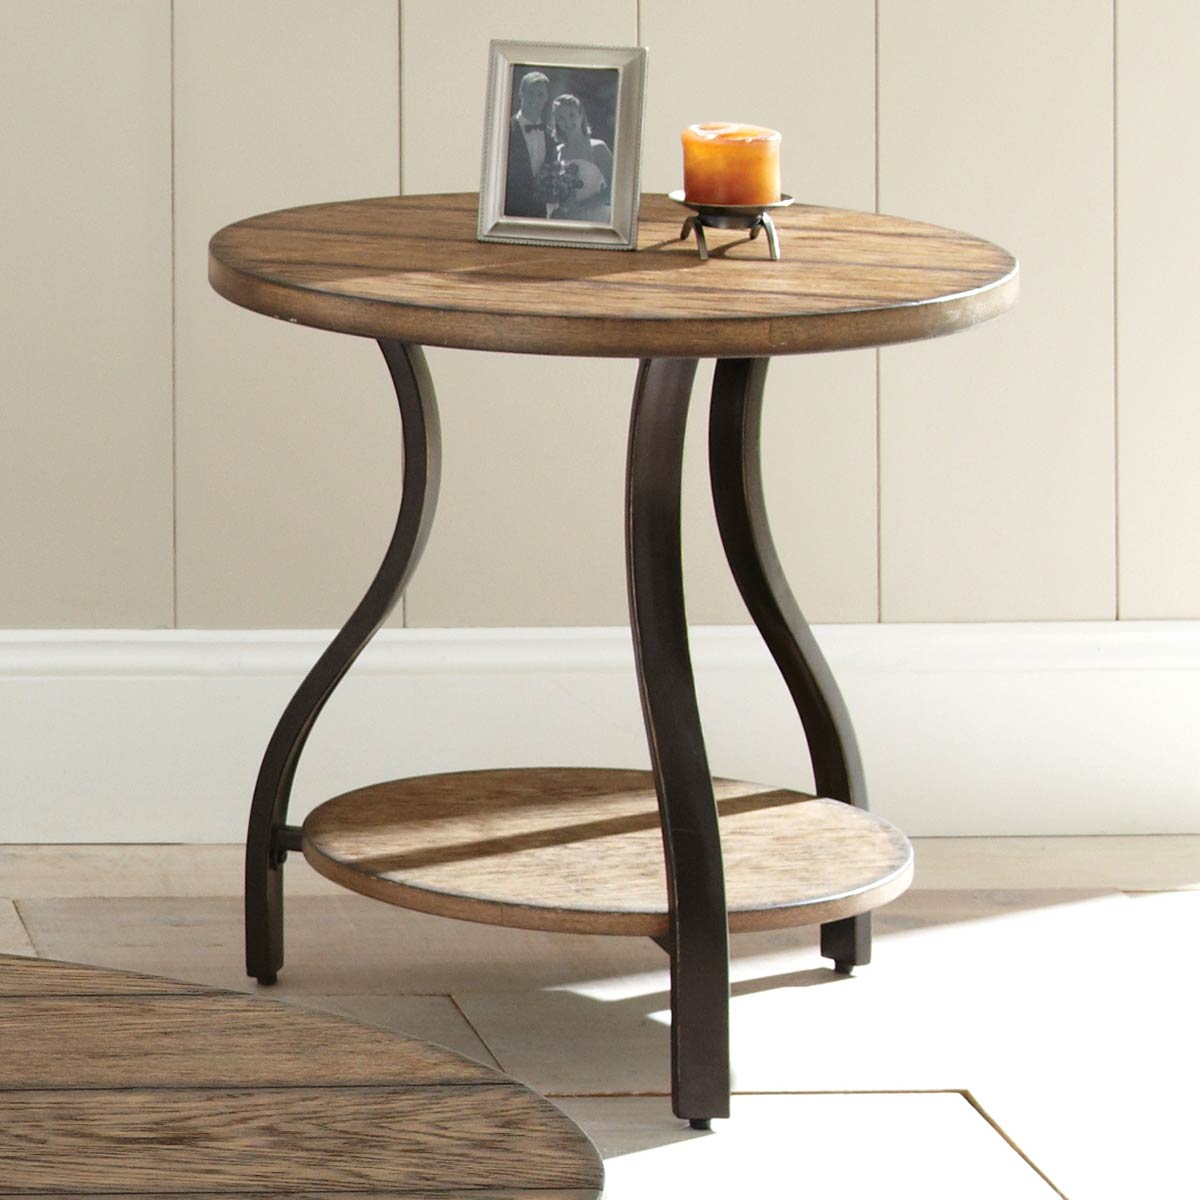 Denise Round Side Table - Light Oak Wood Top, Metal Base - SSC-DN200E